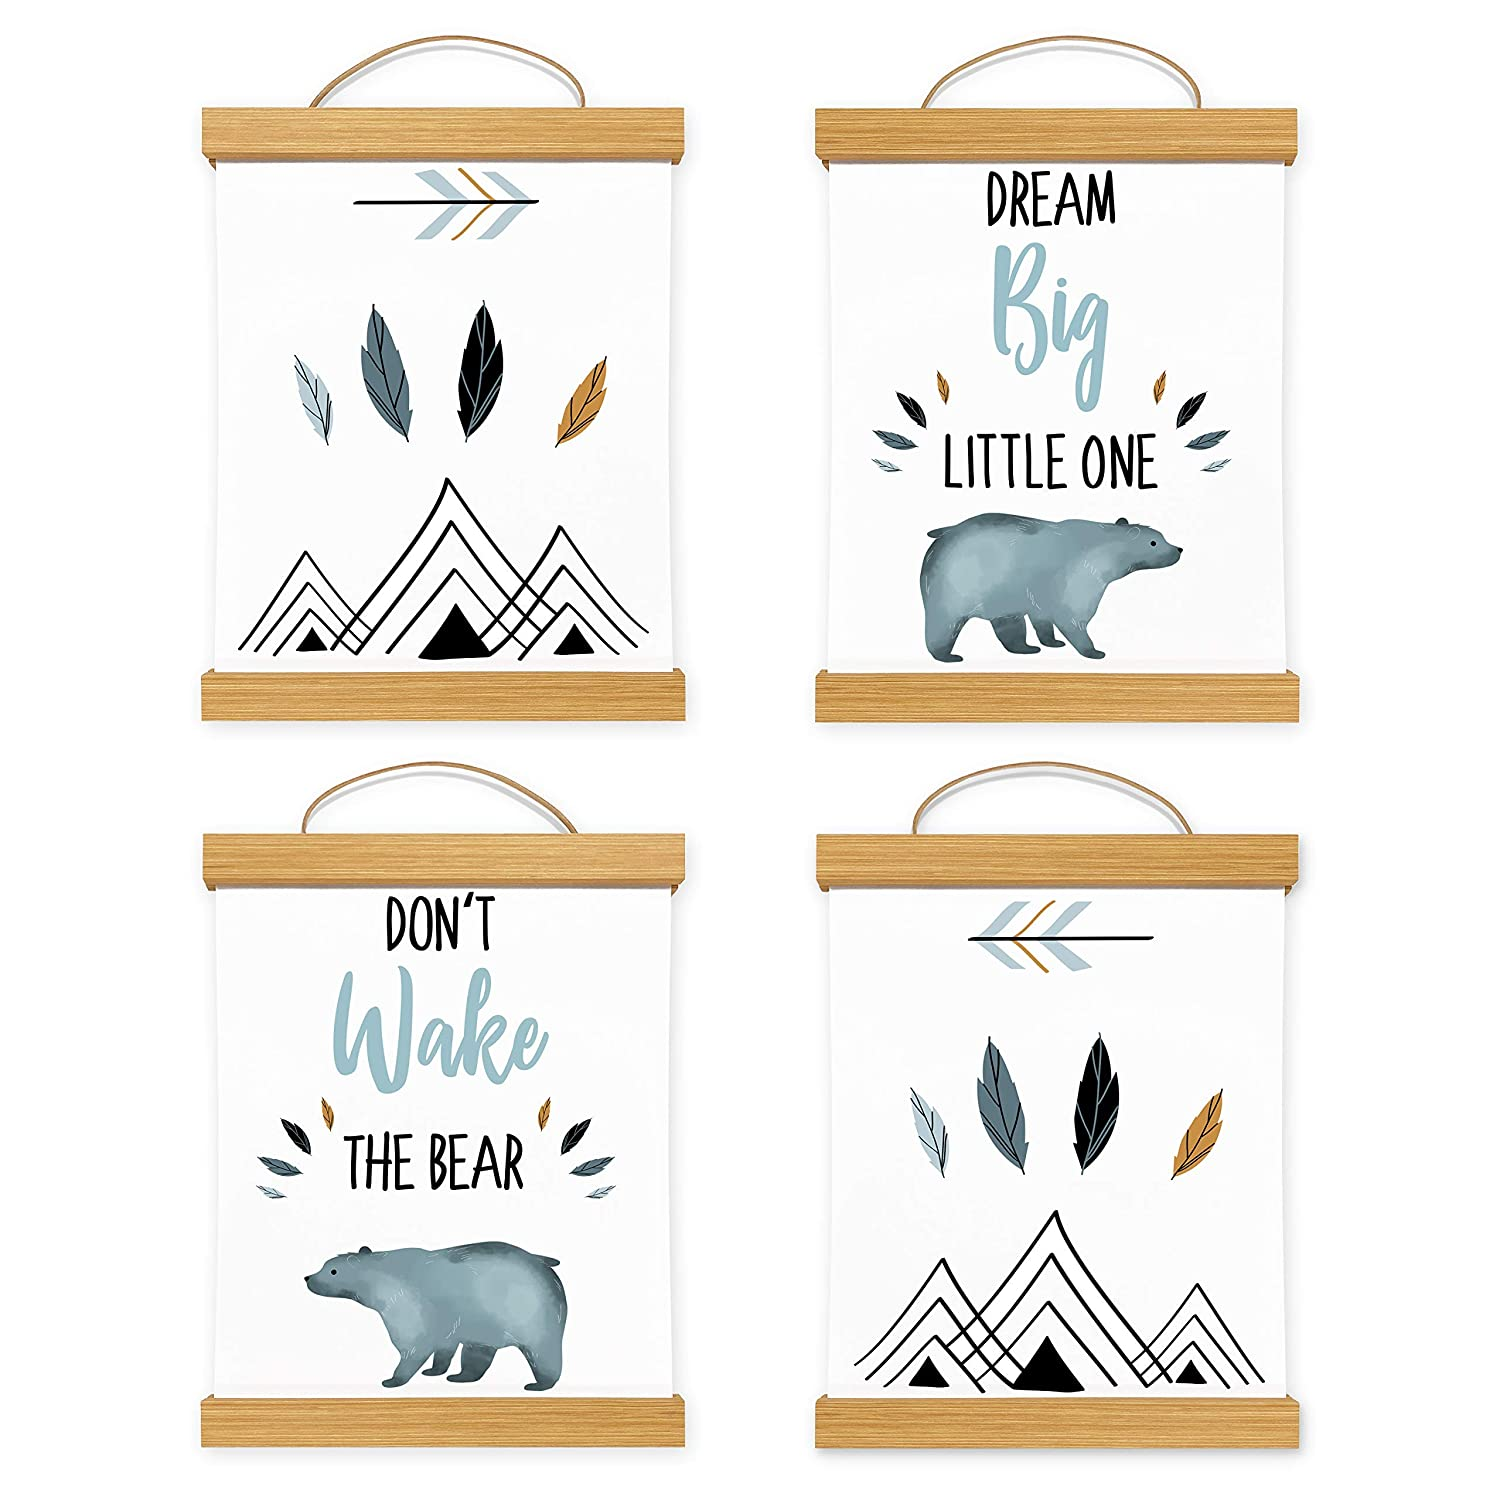 Framed Sweet Jojo Designs Slate Blue White Wall Art Prints Room Decor Baby Nursery Kids Bear Mountain Watercolor Collection - Set of 4 - Dream Big Don't Wake The Bear Wooden Hanging Magnetic Frames